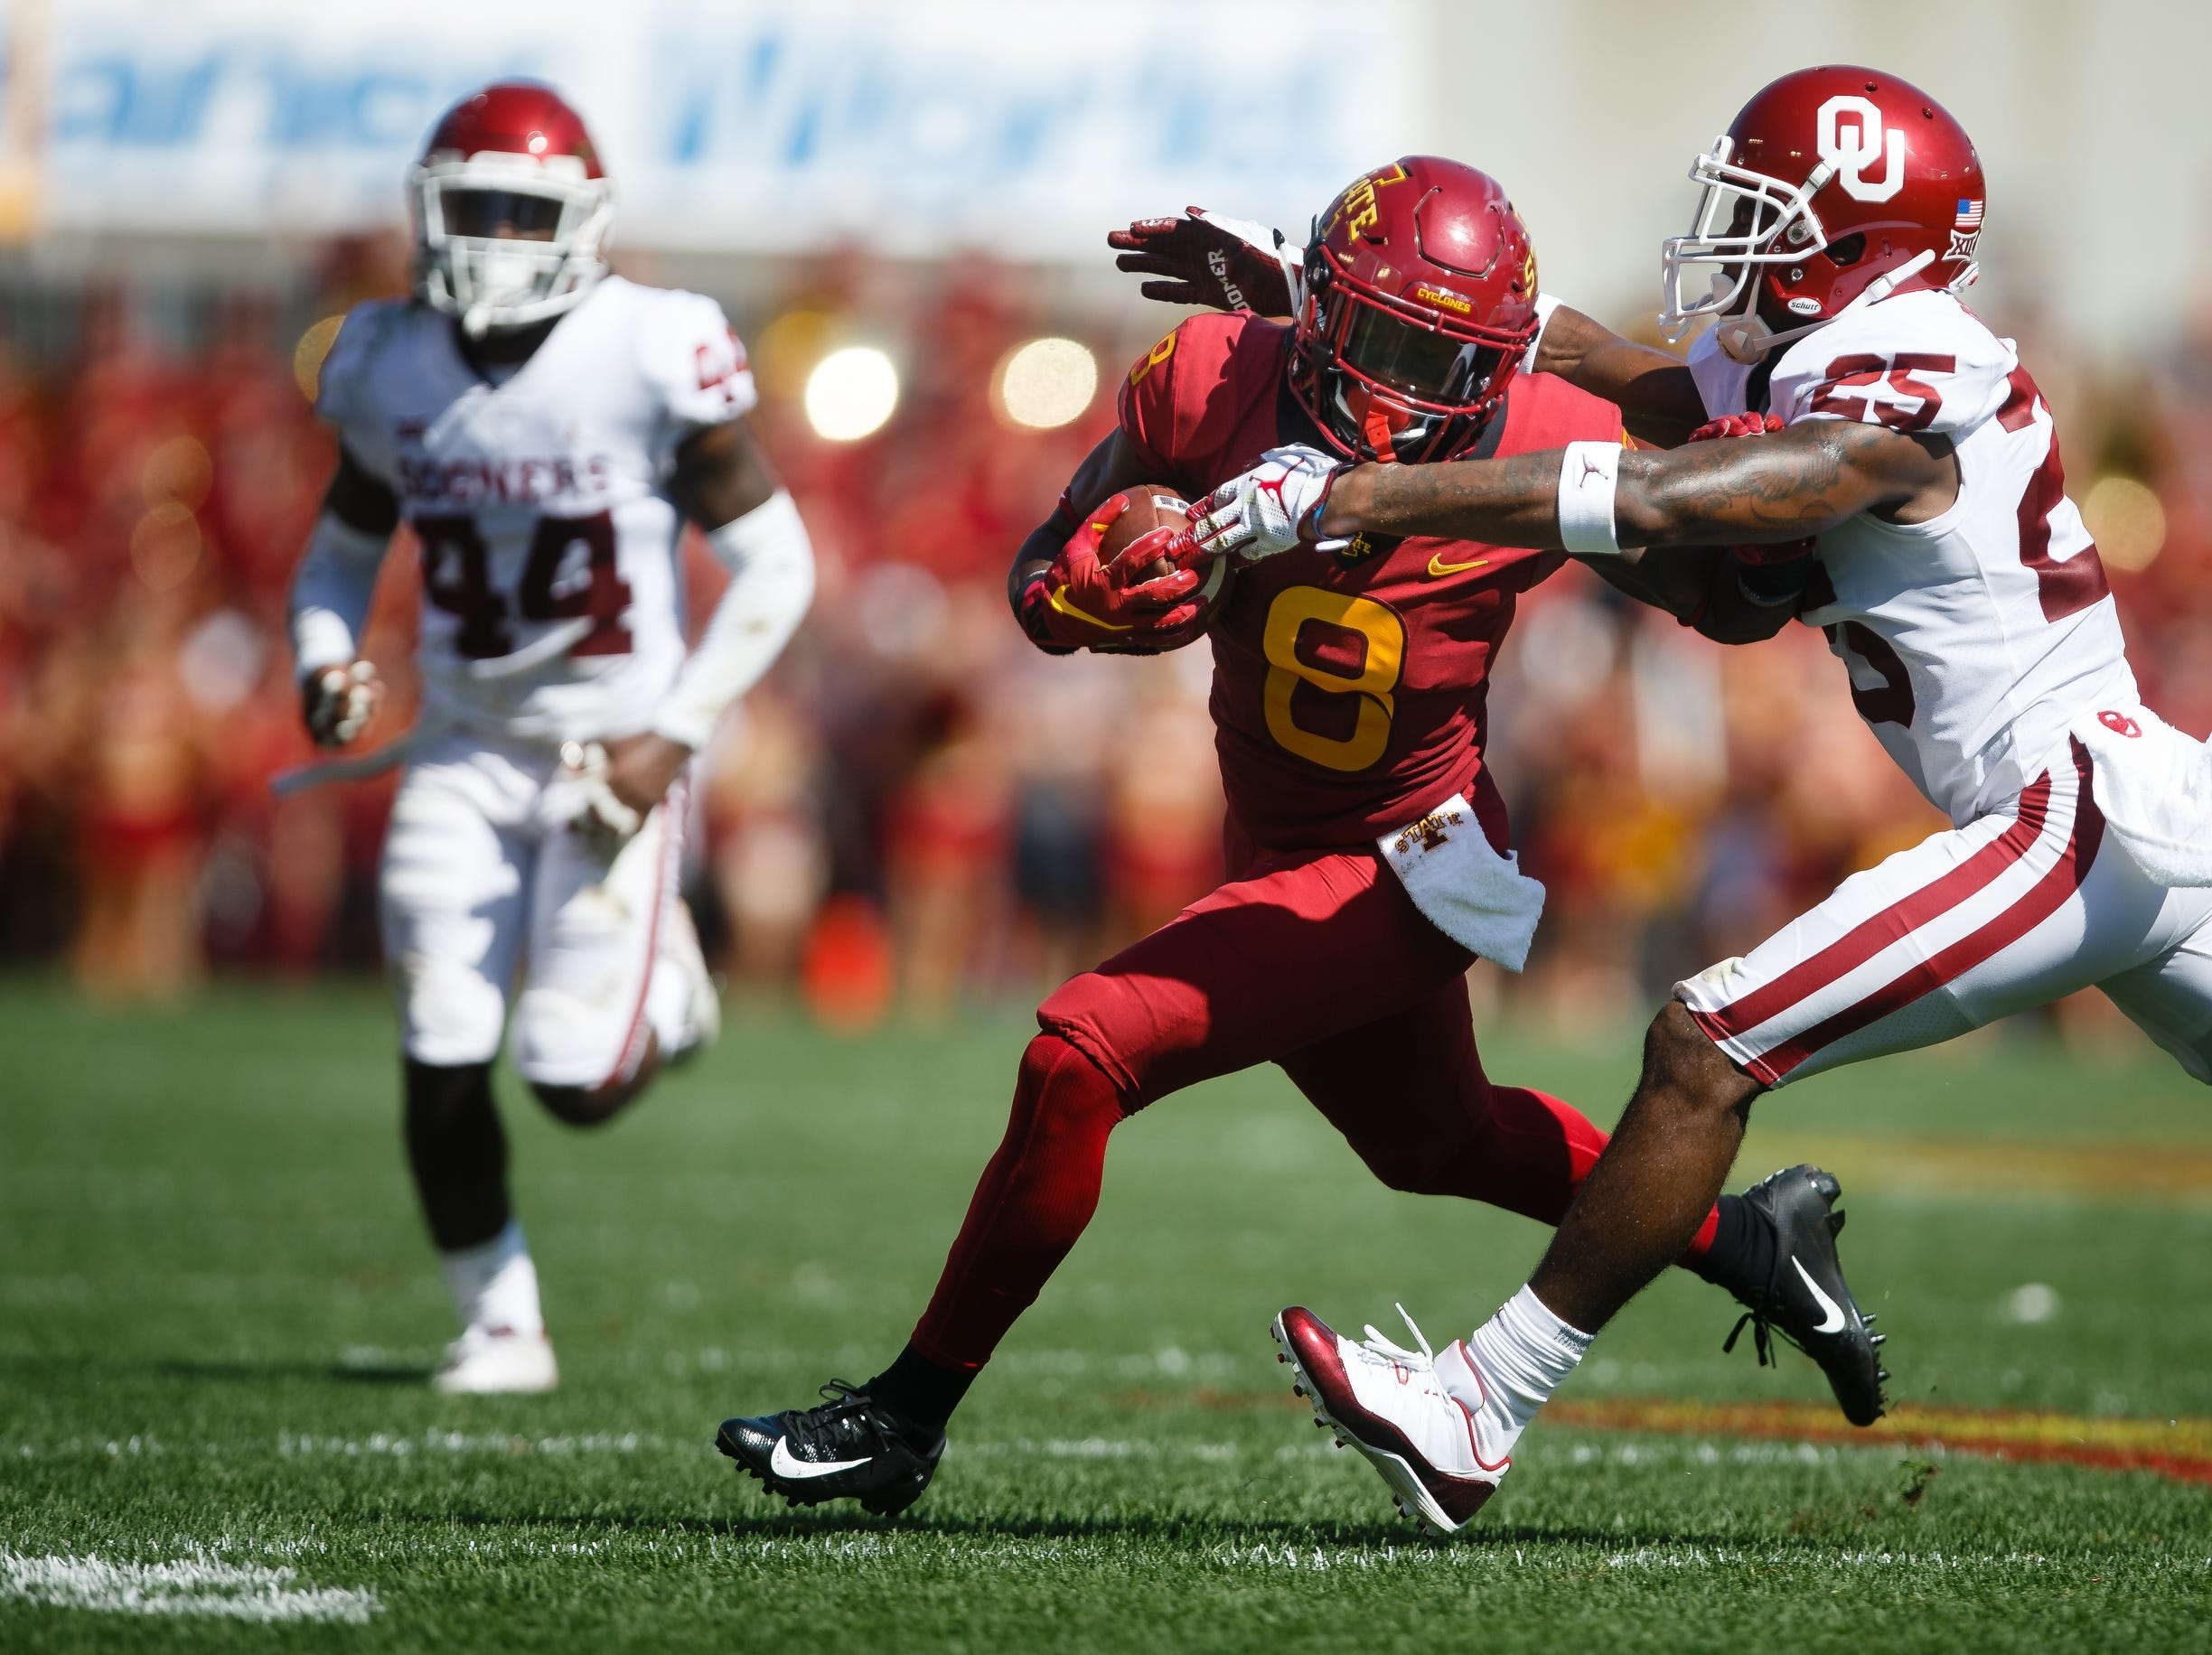 Iowa State's Deshaunte Jones (8) tries to get away from Oklahoma's Justin Broiles (25) during their football game at Jack Trice Stadium on Saturday, Sept. 15, 2018 in Ames. Oklahoma would go on to win 37-27.